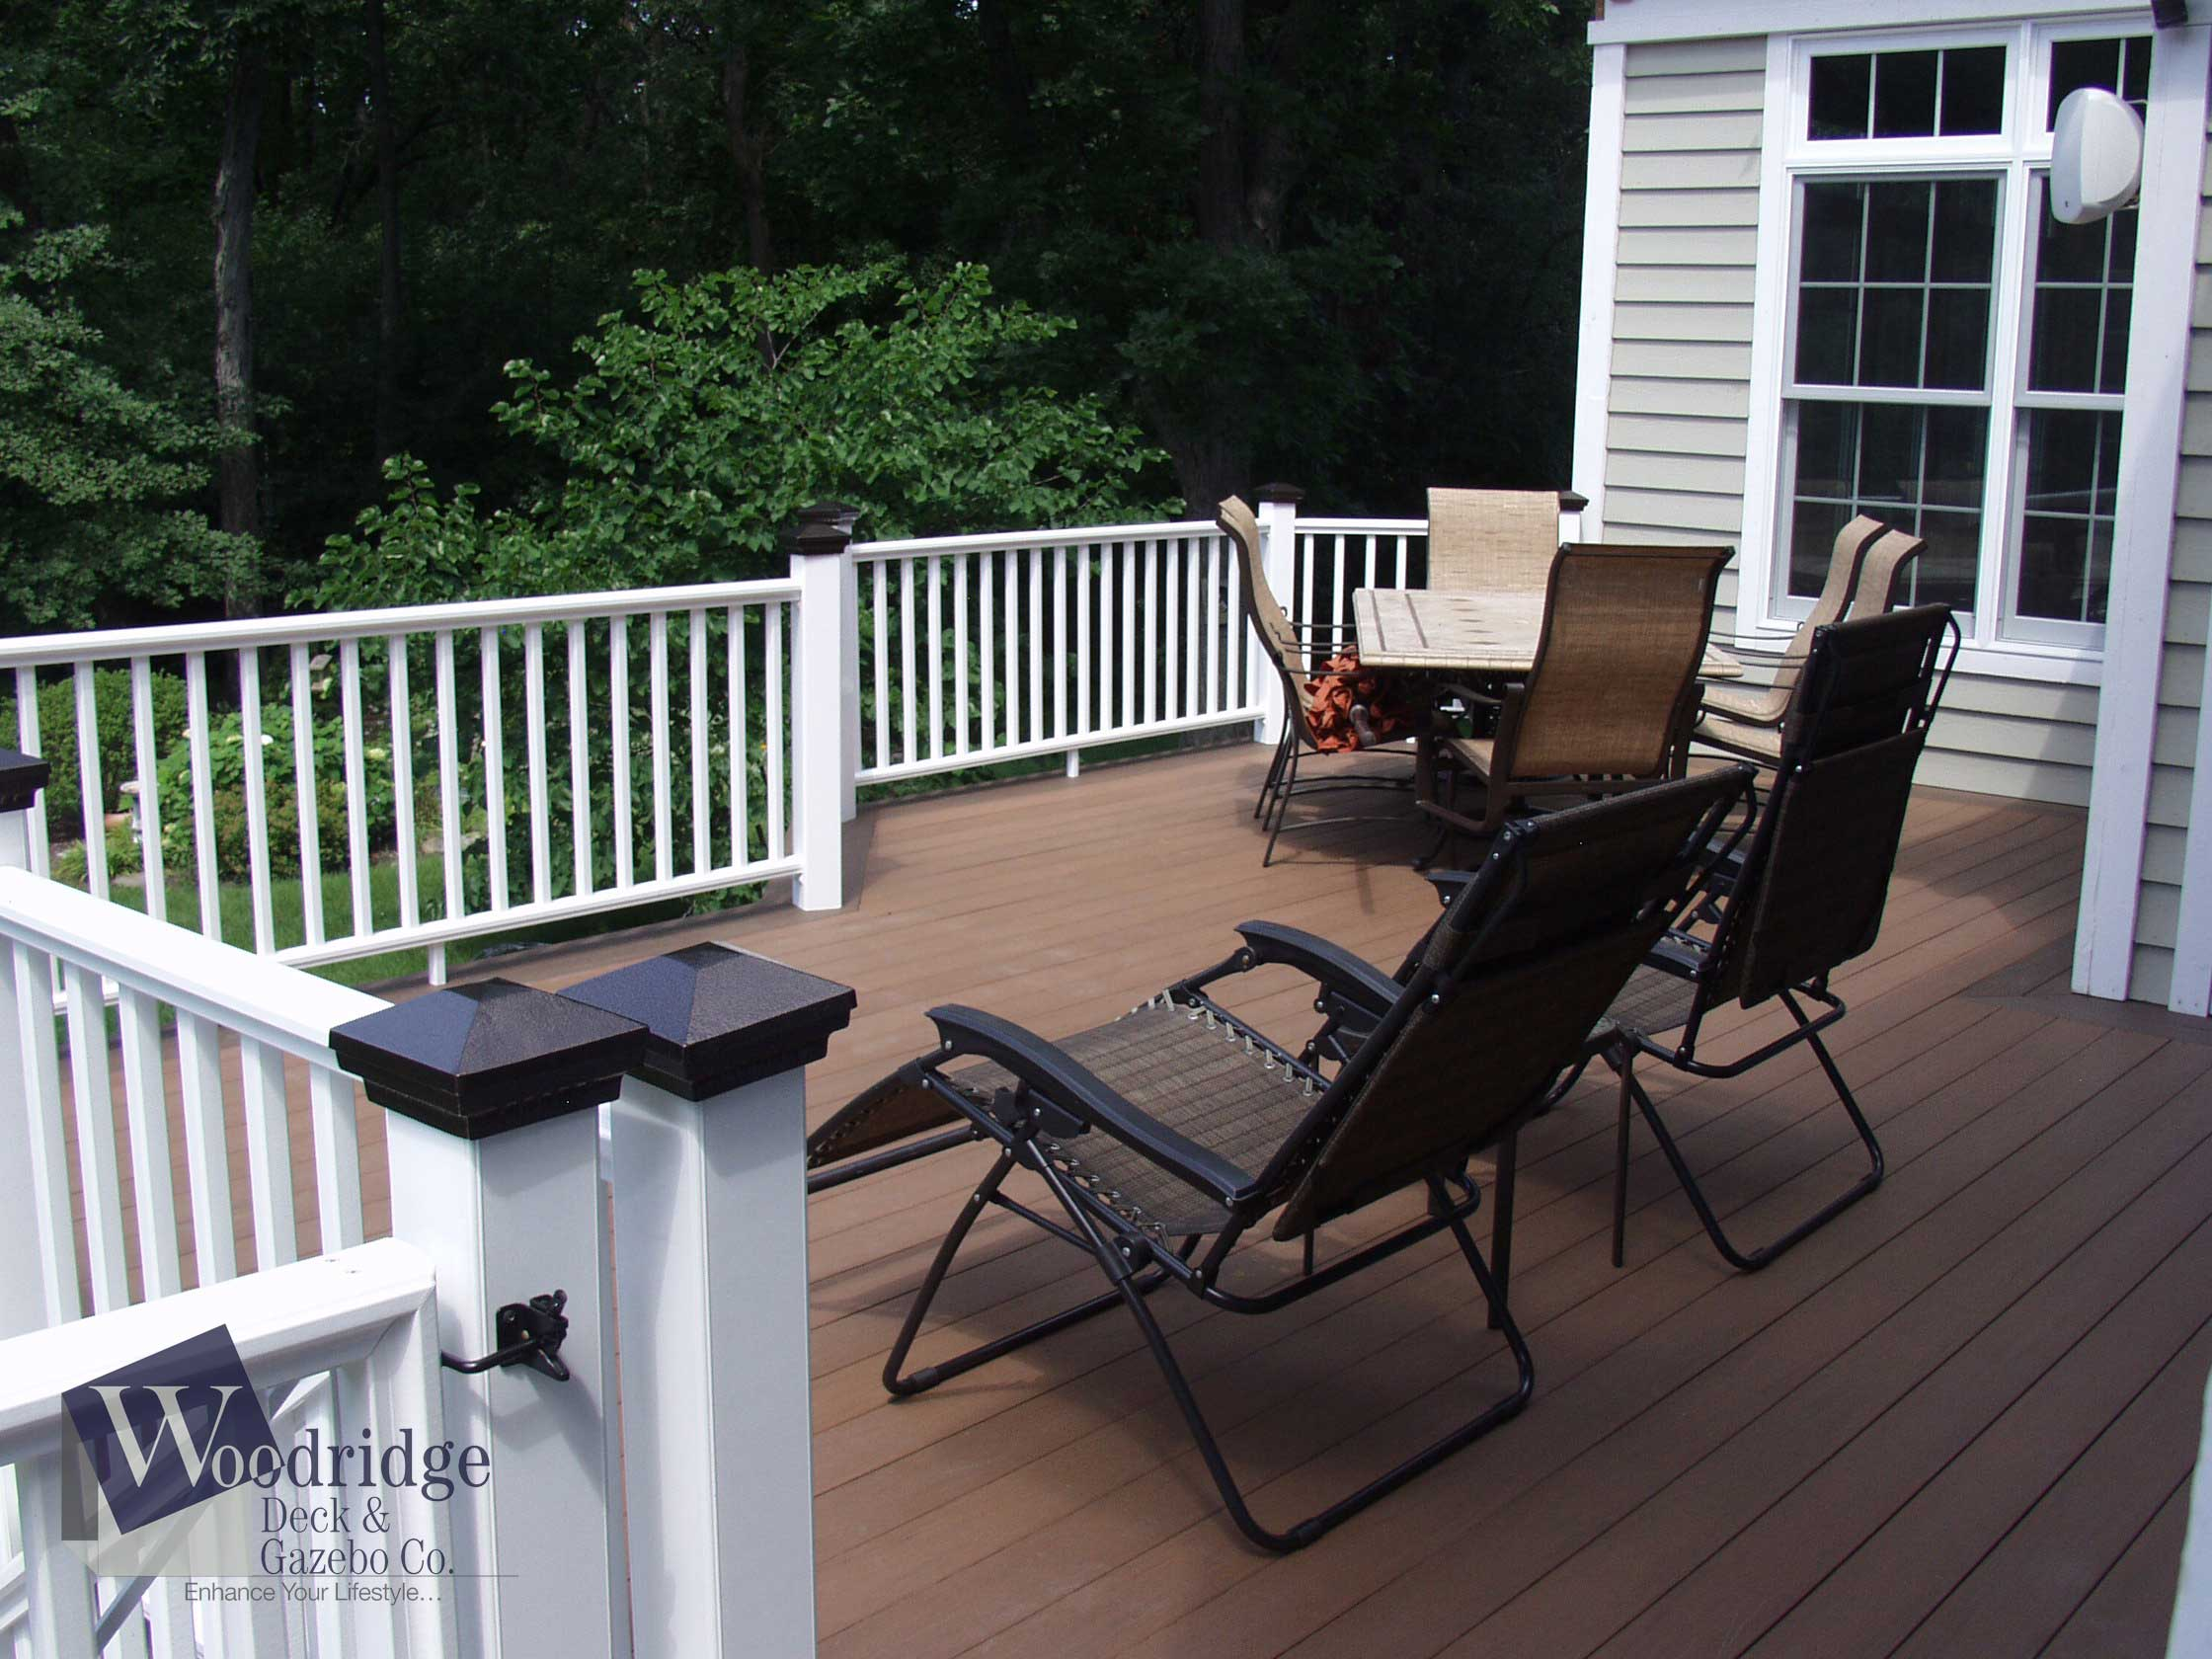 AA-02 PVC Deck Woodridge Deck & Gazebo Co.